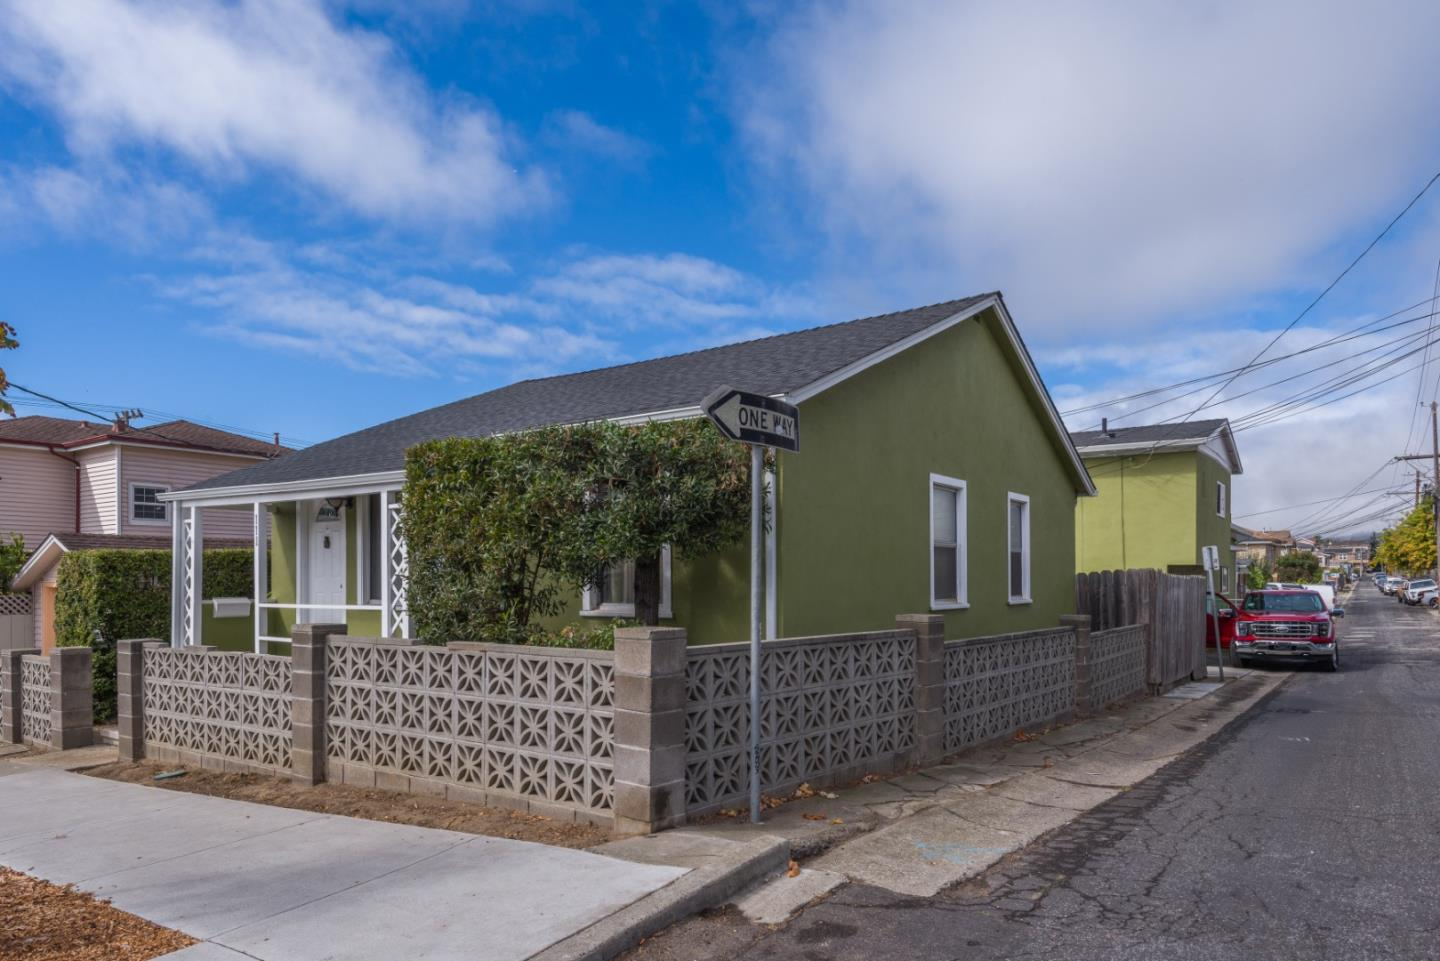 5-Bedroom House In Downtown South San Francisco